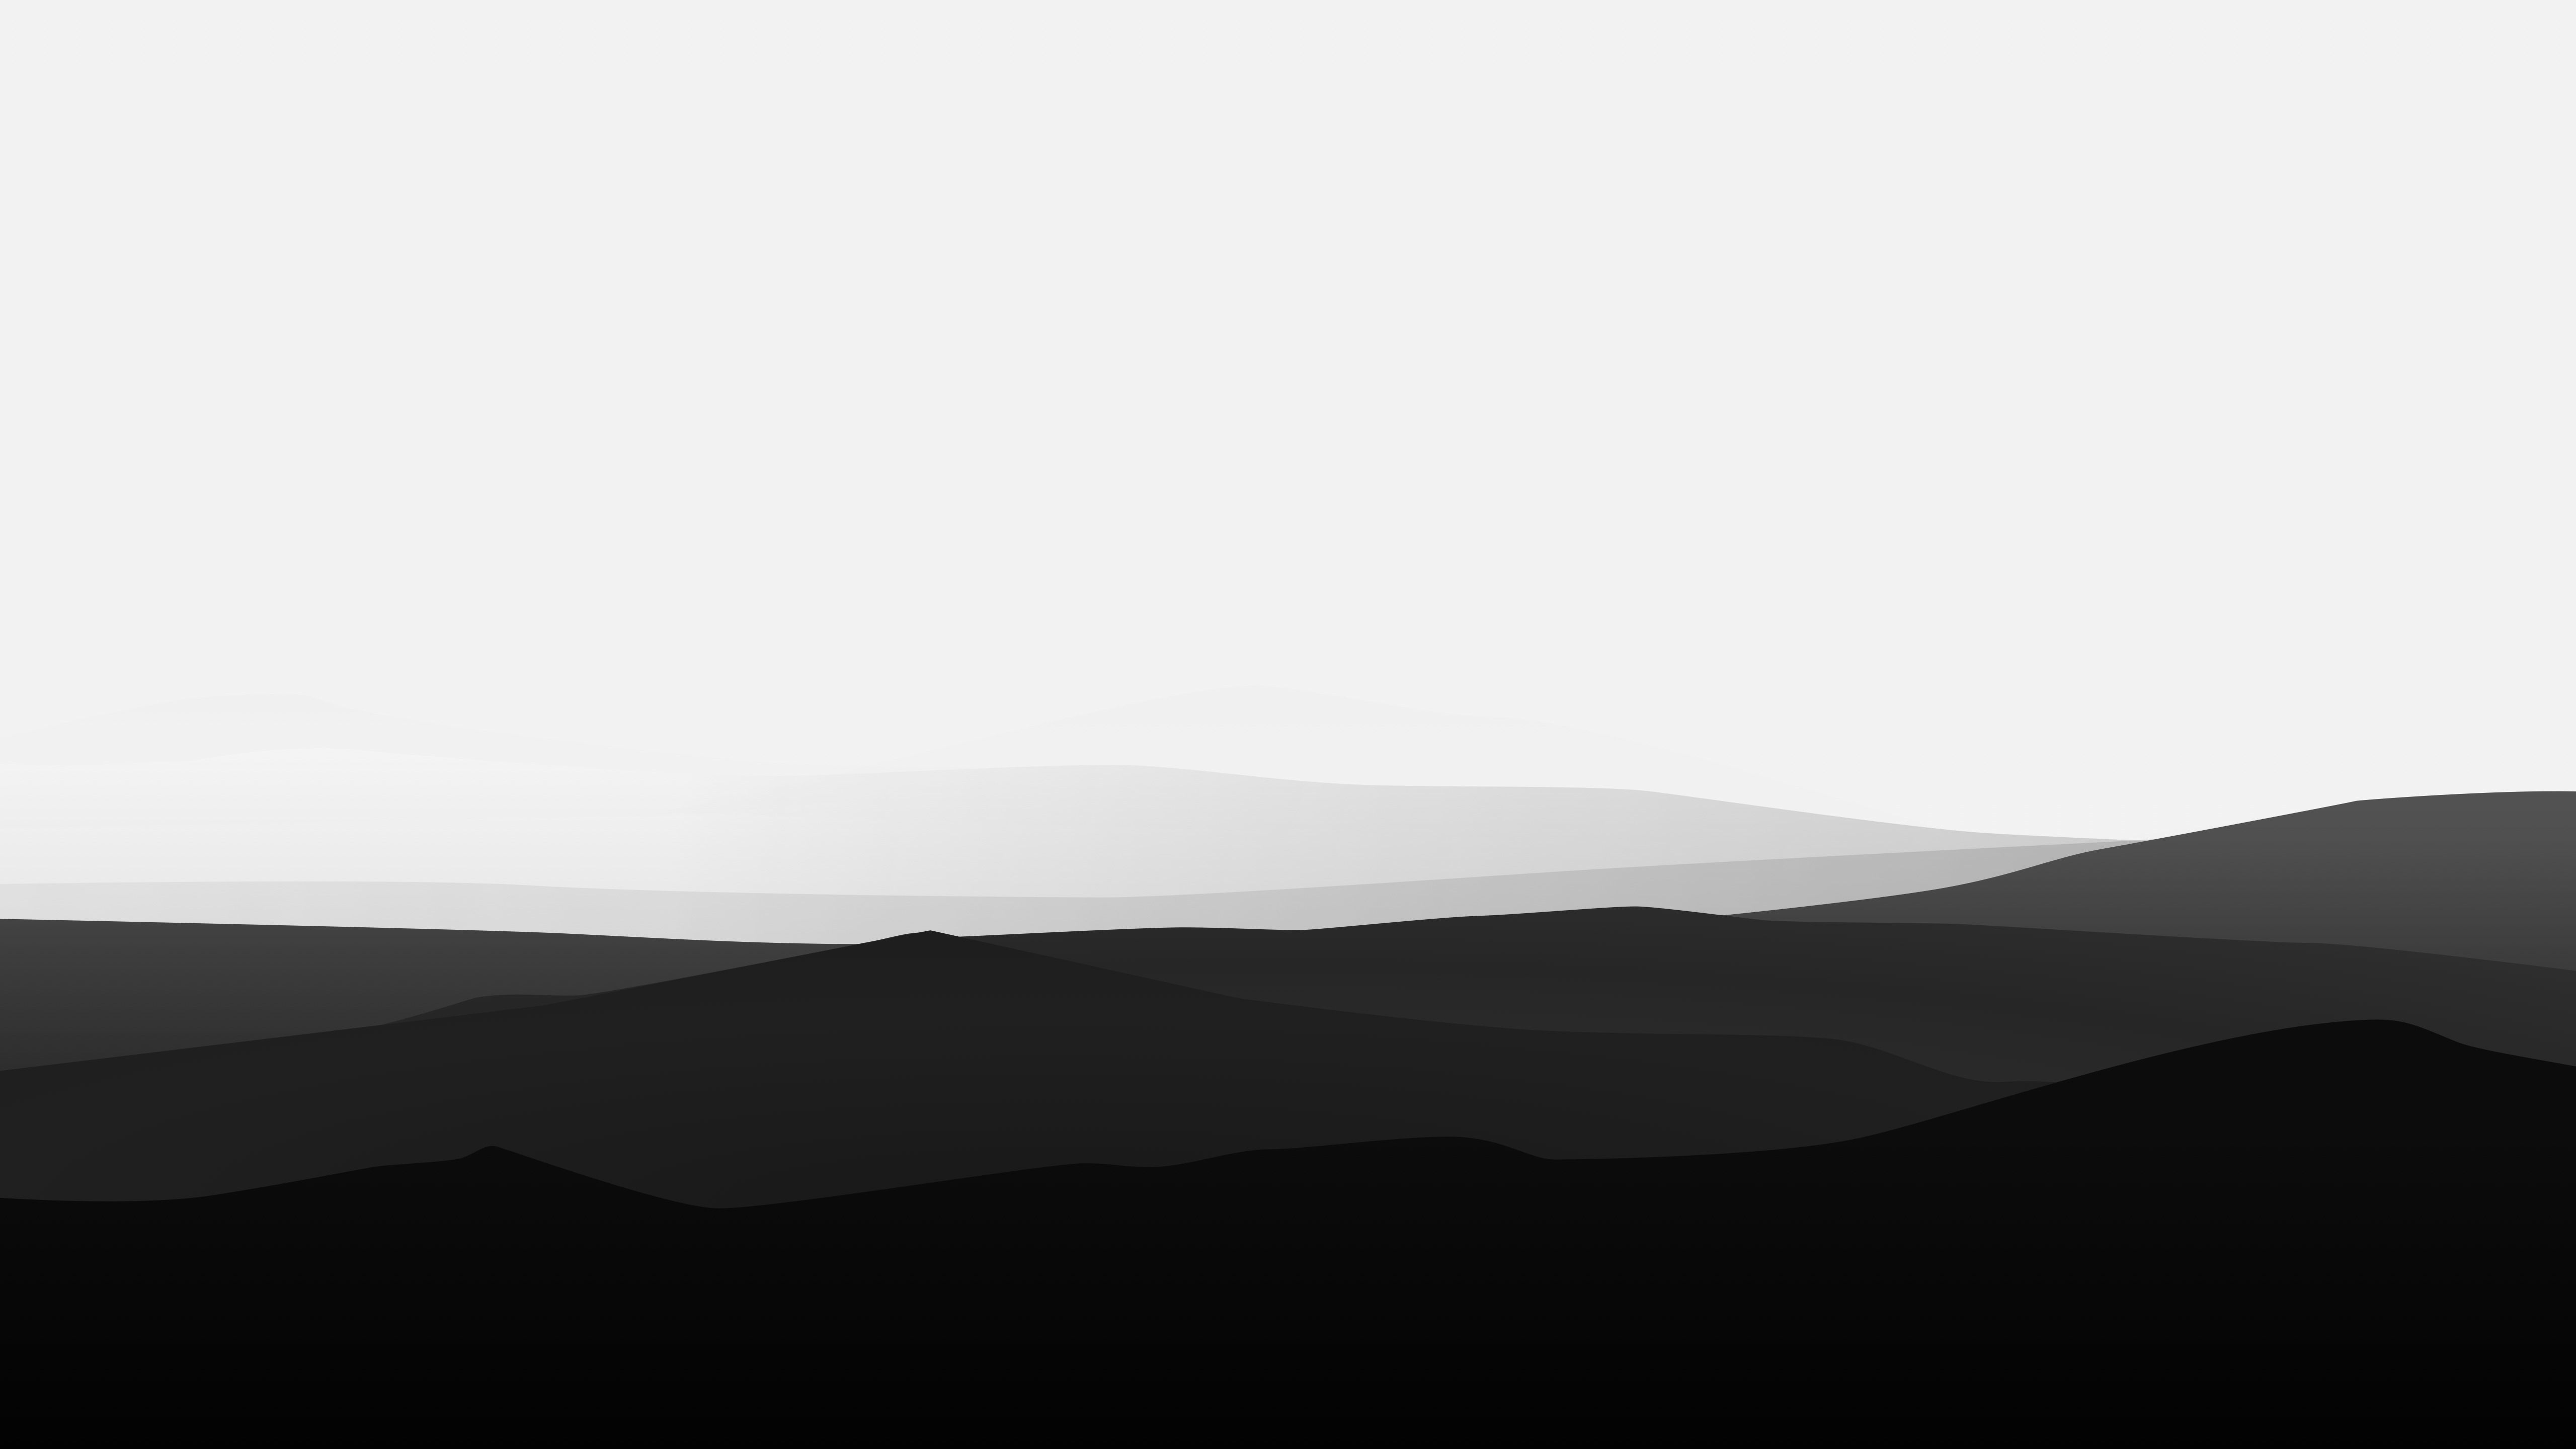 Minimalist Black And White Wallpaper 4k